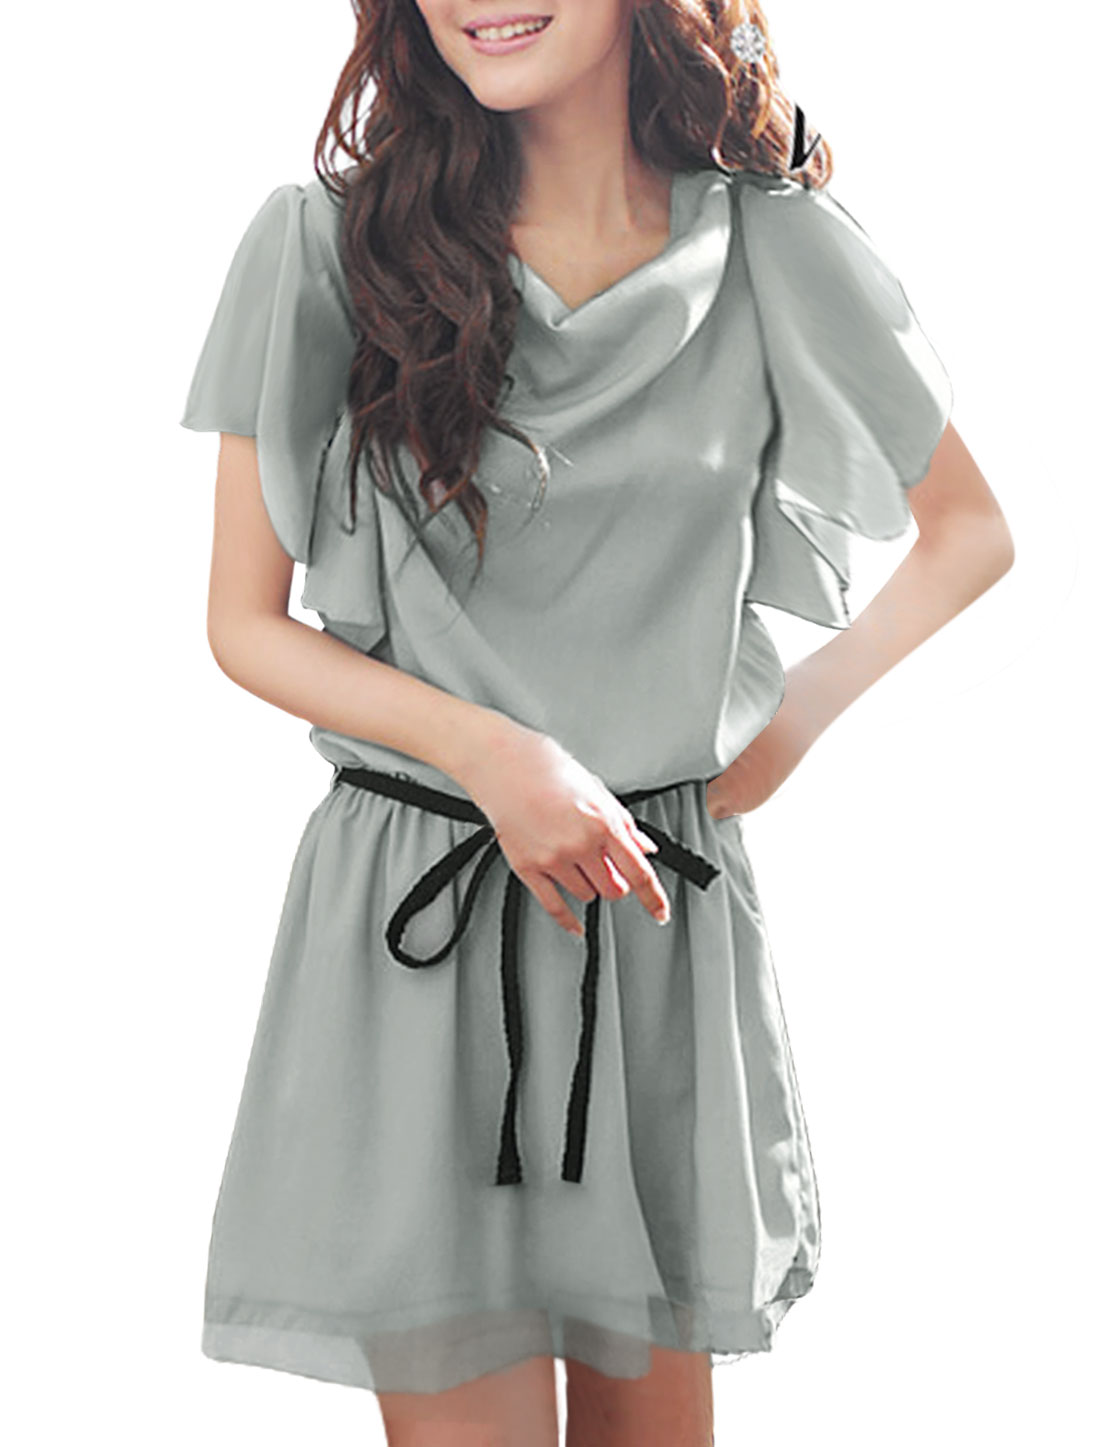 Woman Chic Cowl Neck Short Ruffled Sleeve Pure Gray Dress w Waist Strap M